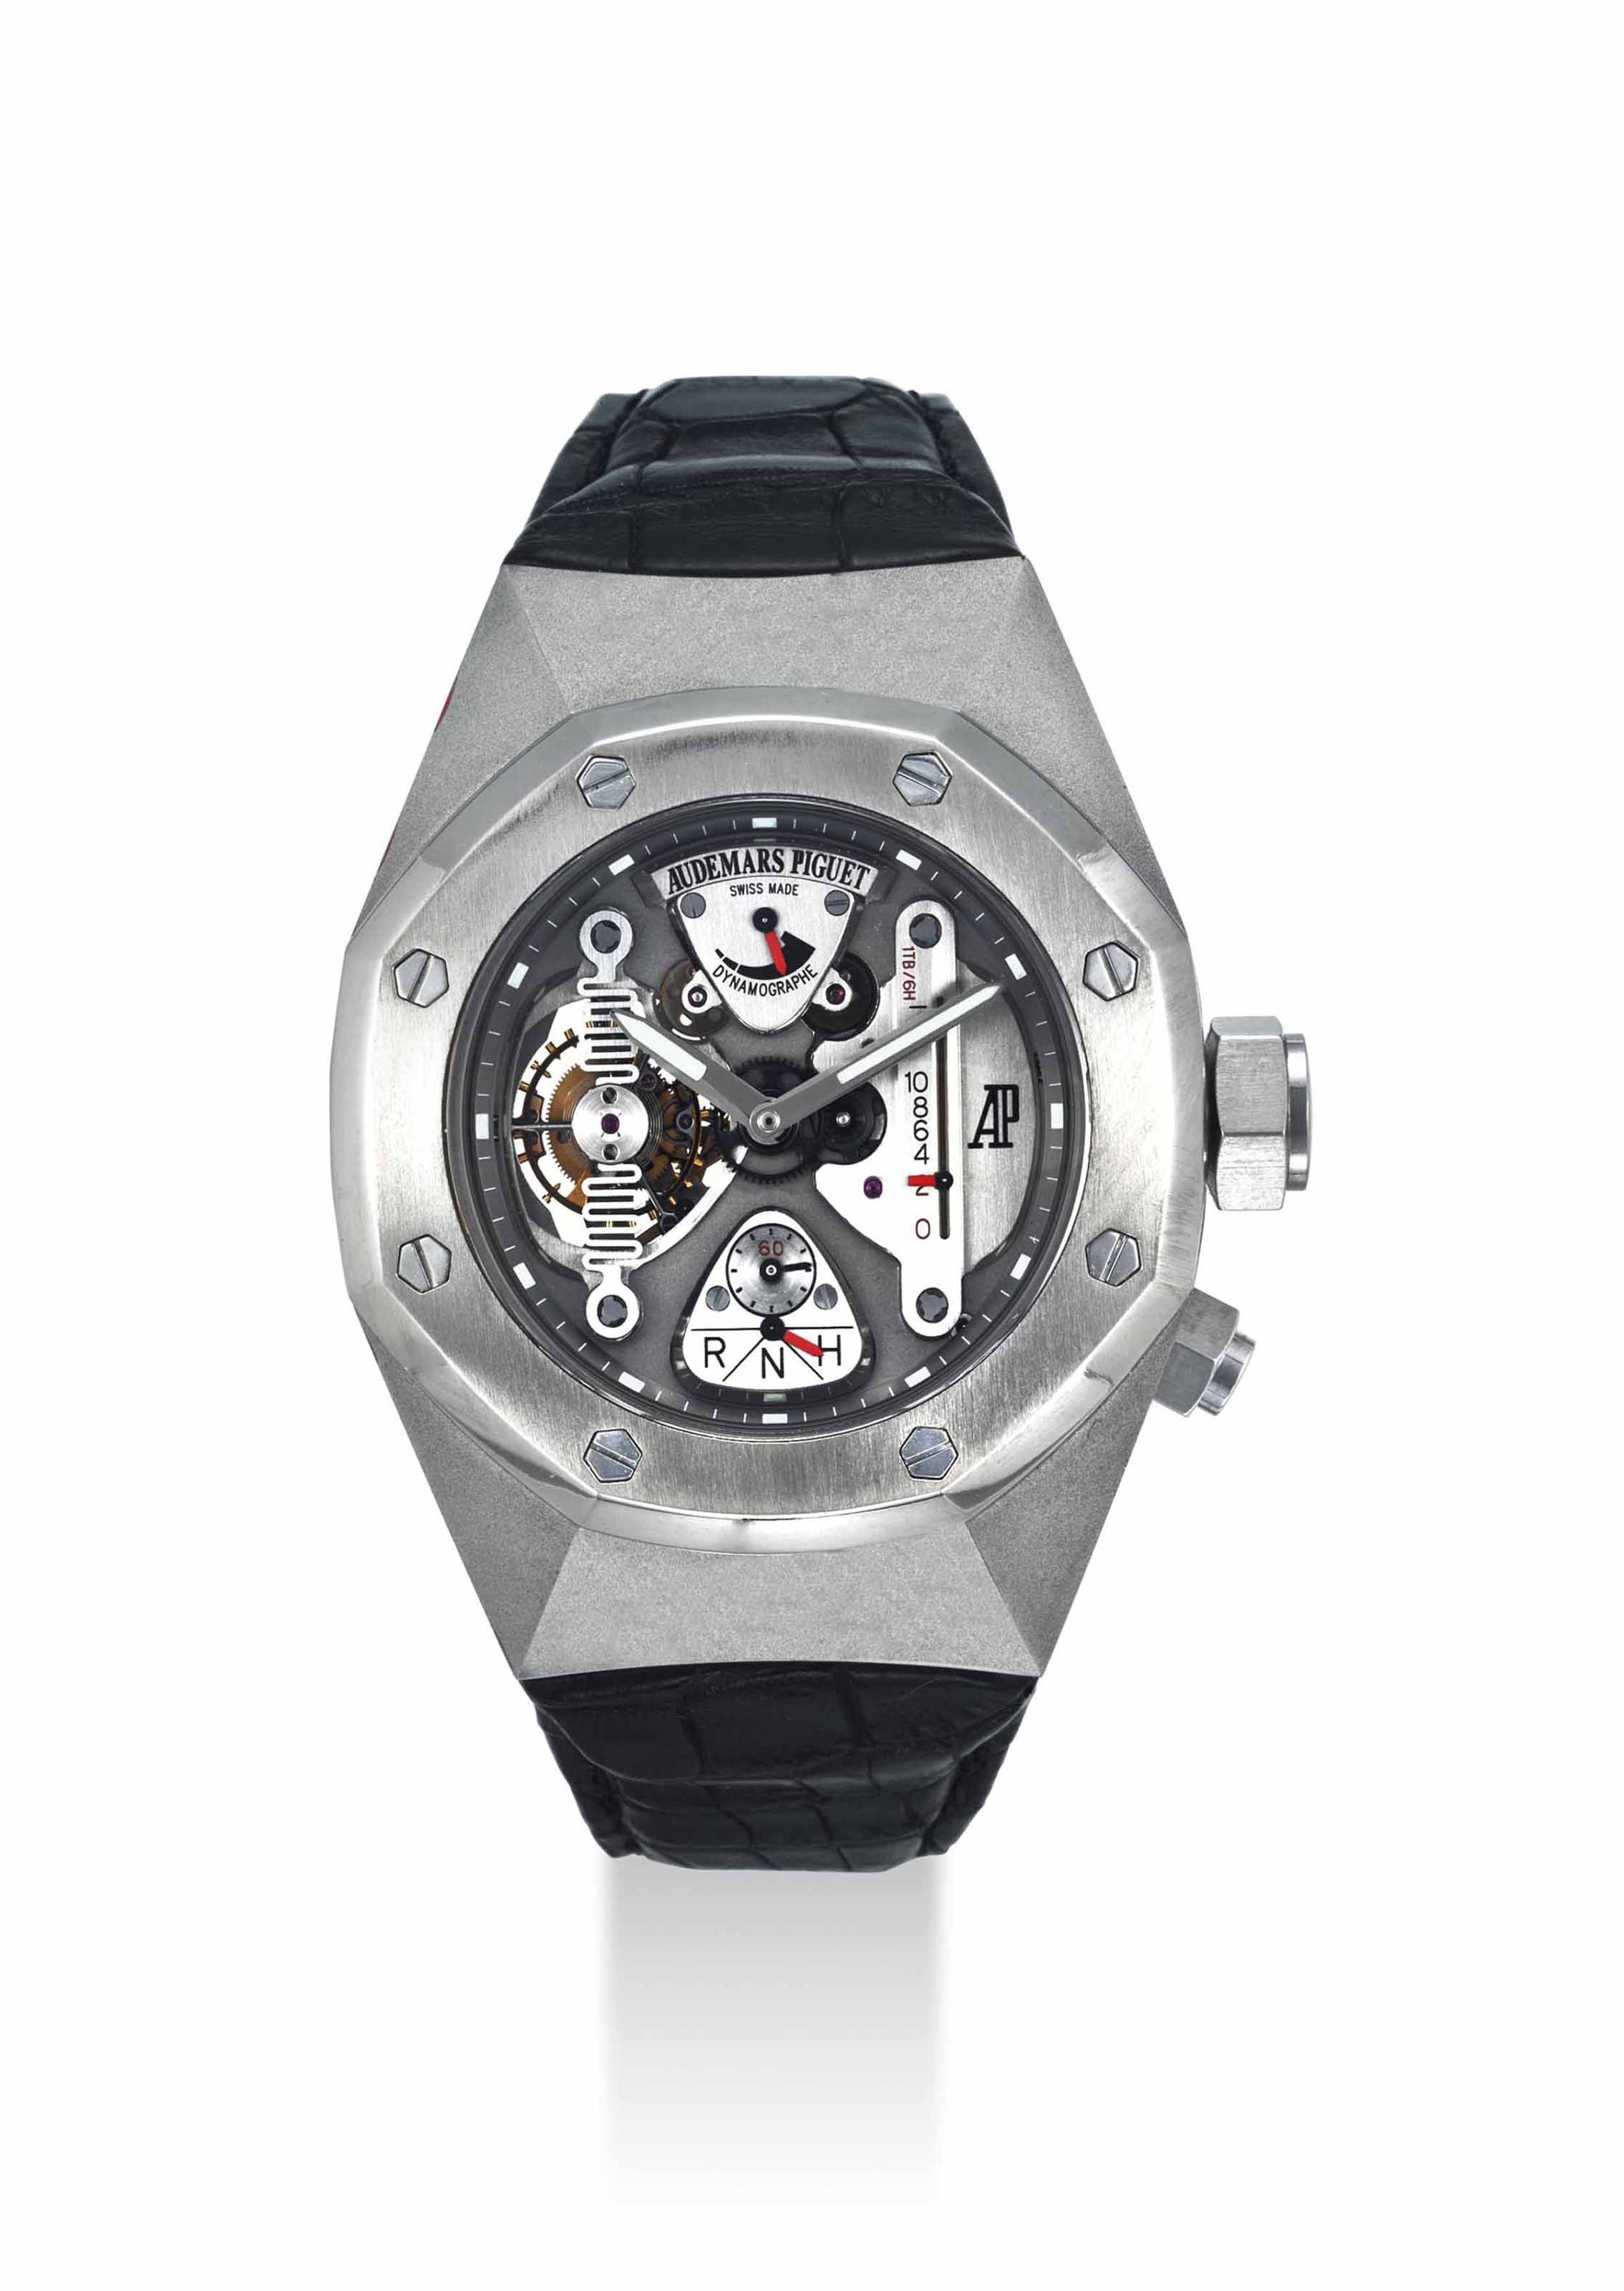 AUDEMARS PIGUET. A VERY FINE AND IMPORTANT ALACRITE 602 AND TITANIUM LIMITED EDITION TONNEAU-SHAPED SEMI-SKELETONIZED TOURBILLON WRISTWATCH WITH POWER RESERVE AND DYNAMOGRAPH INDICATION